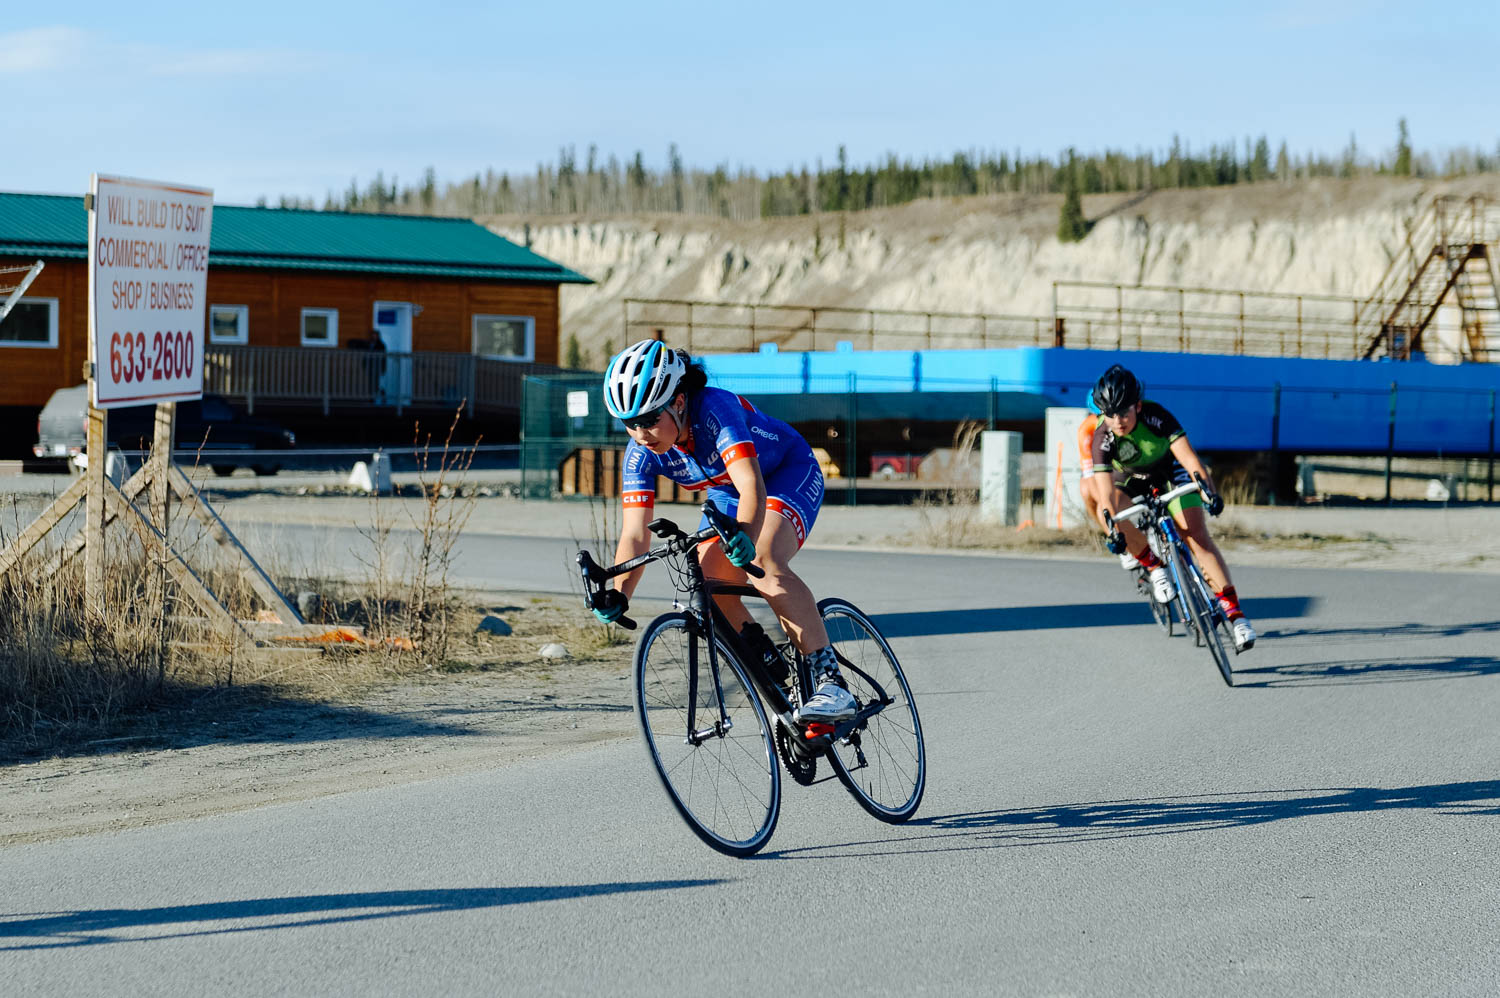 The girls raced their first ever Criterium. What is that you wonder? A criterium, or crit, is a road bike race consisting of several laps around a short closed circuit. The girls are new to road riding and working with the peloton and knowing what to do and when to sprint is an art that has to be learned and experienced over and over. Luckily, this great group at U kon Echelon guided them throughout the race and it was the perfect first experience. They left exhilarated and asking when the next race would be. An undeniable success!